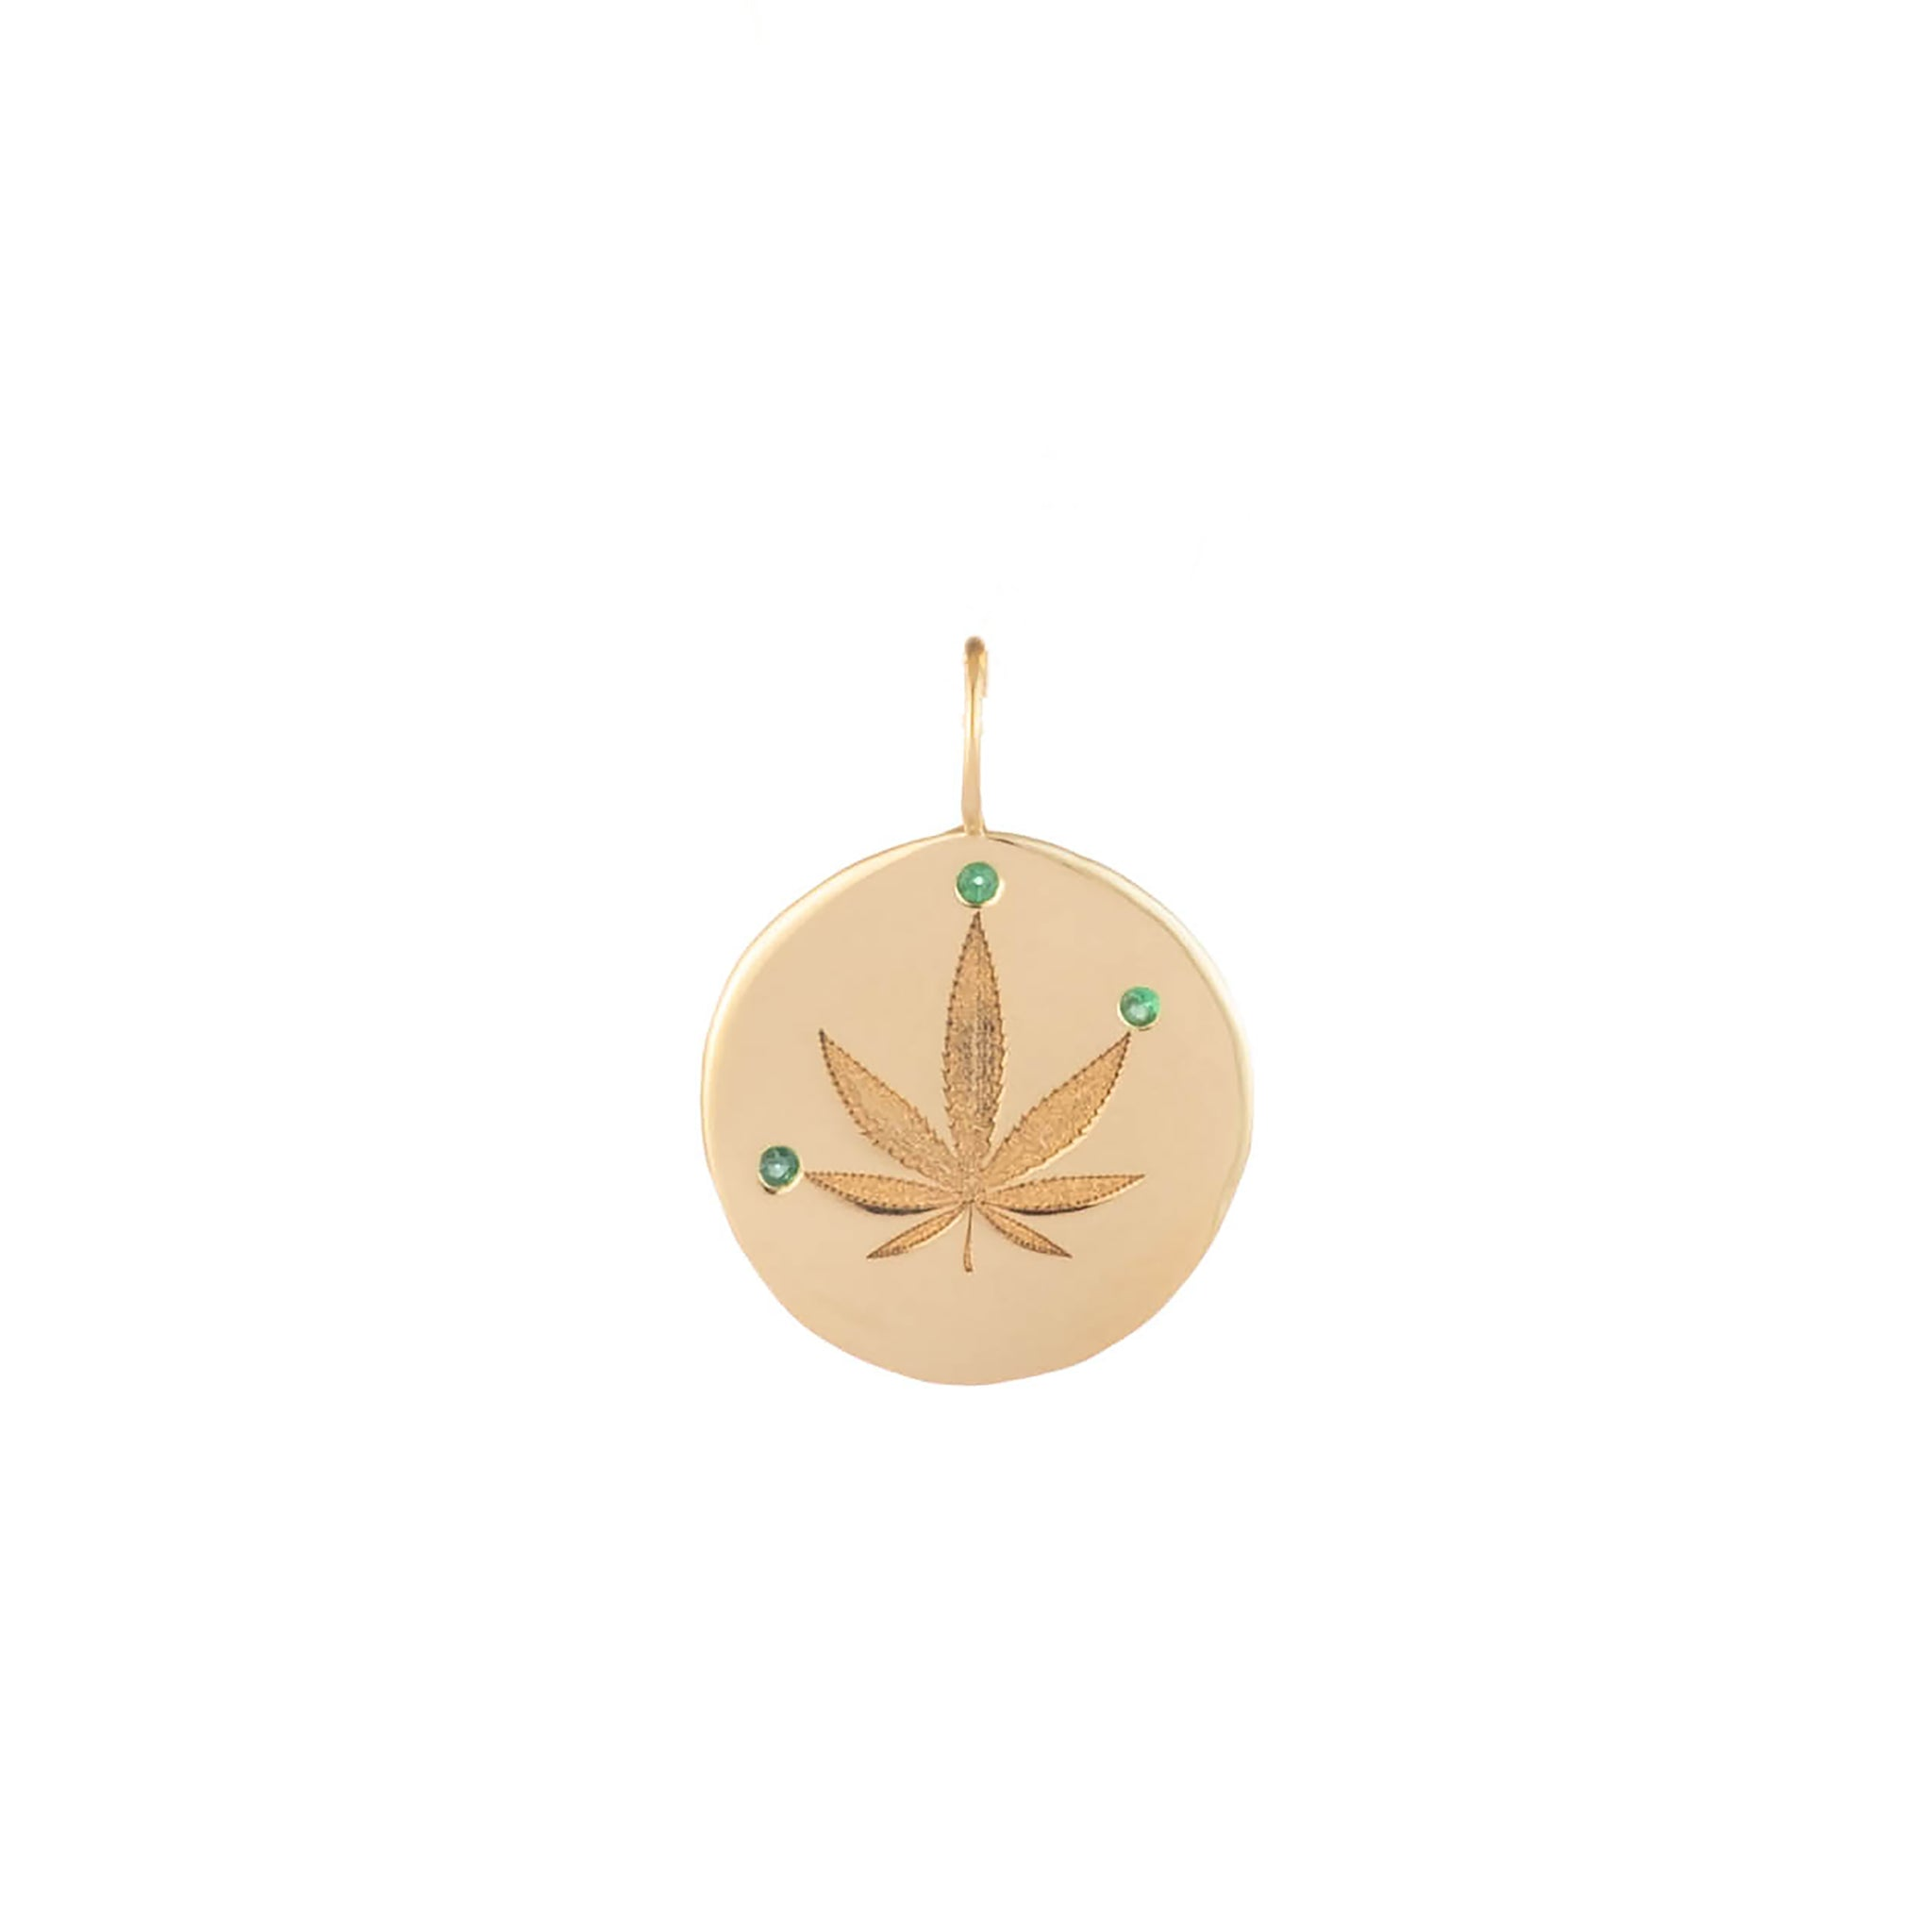 ali grace jewelry pot leaf cannabis leaf jewelry stoner jewelry gold engraved charm custom charm necklace rock n roll jewelry green day